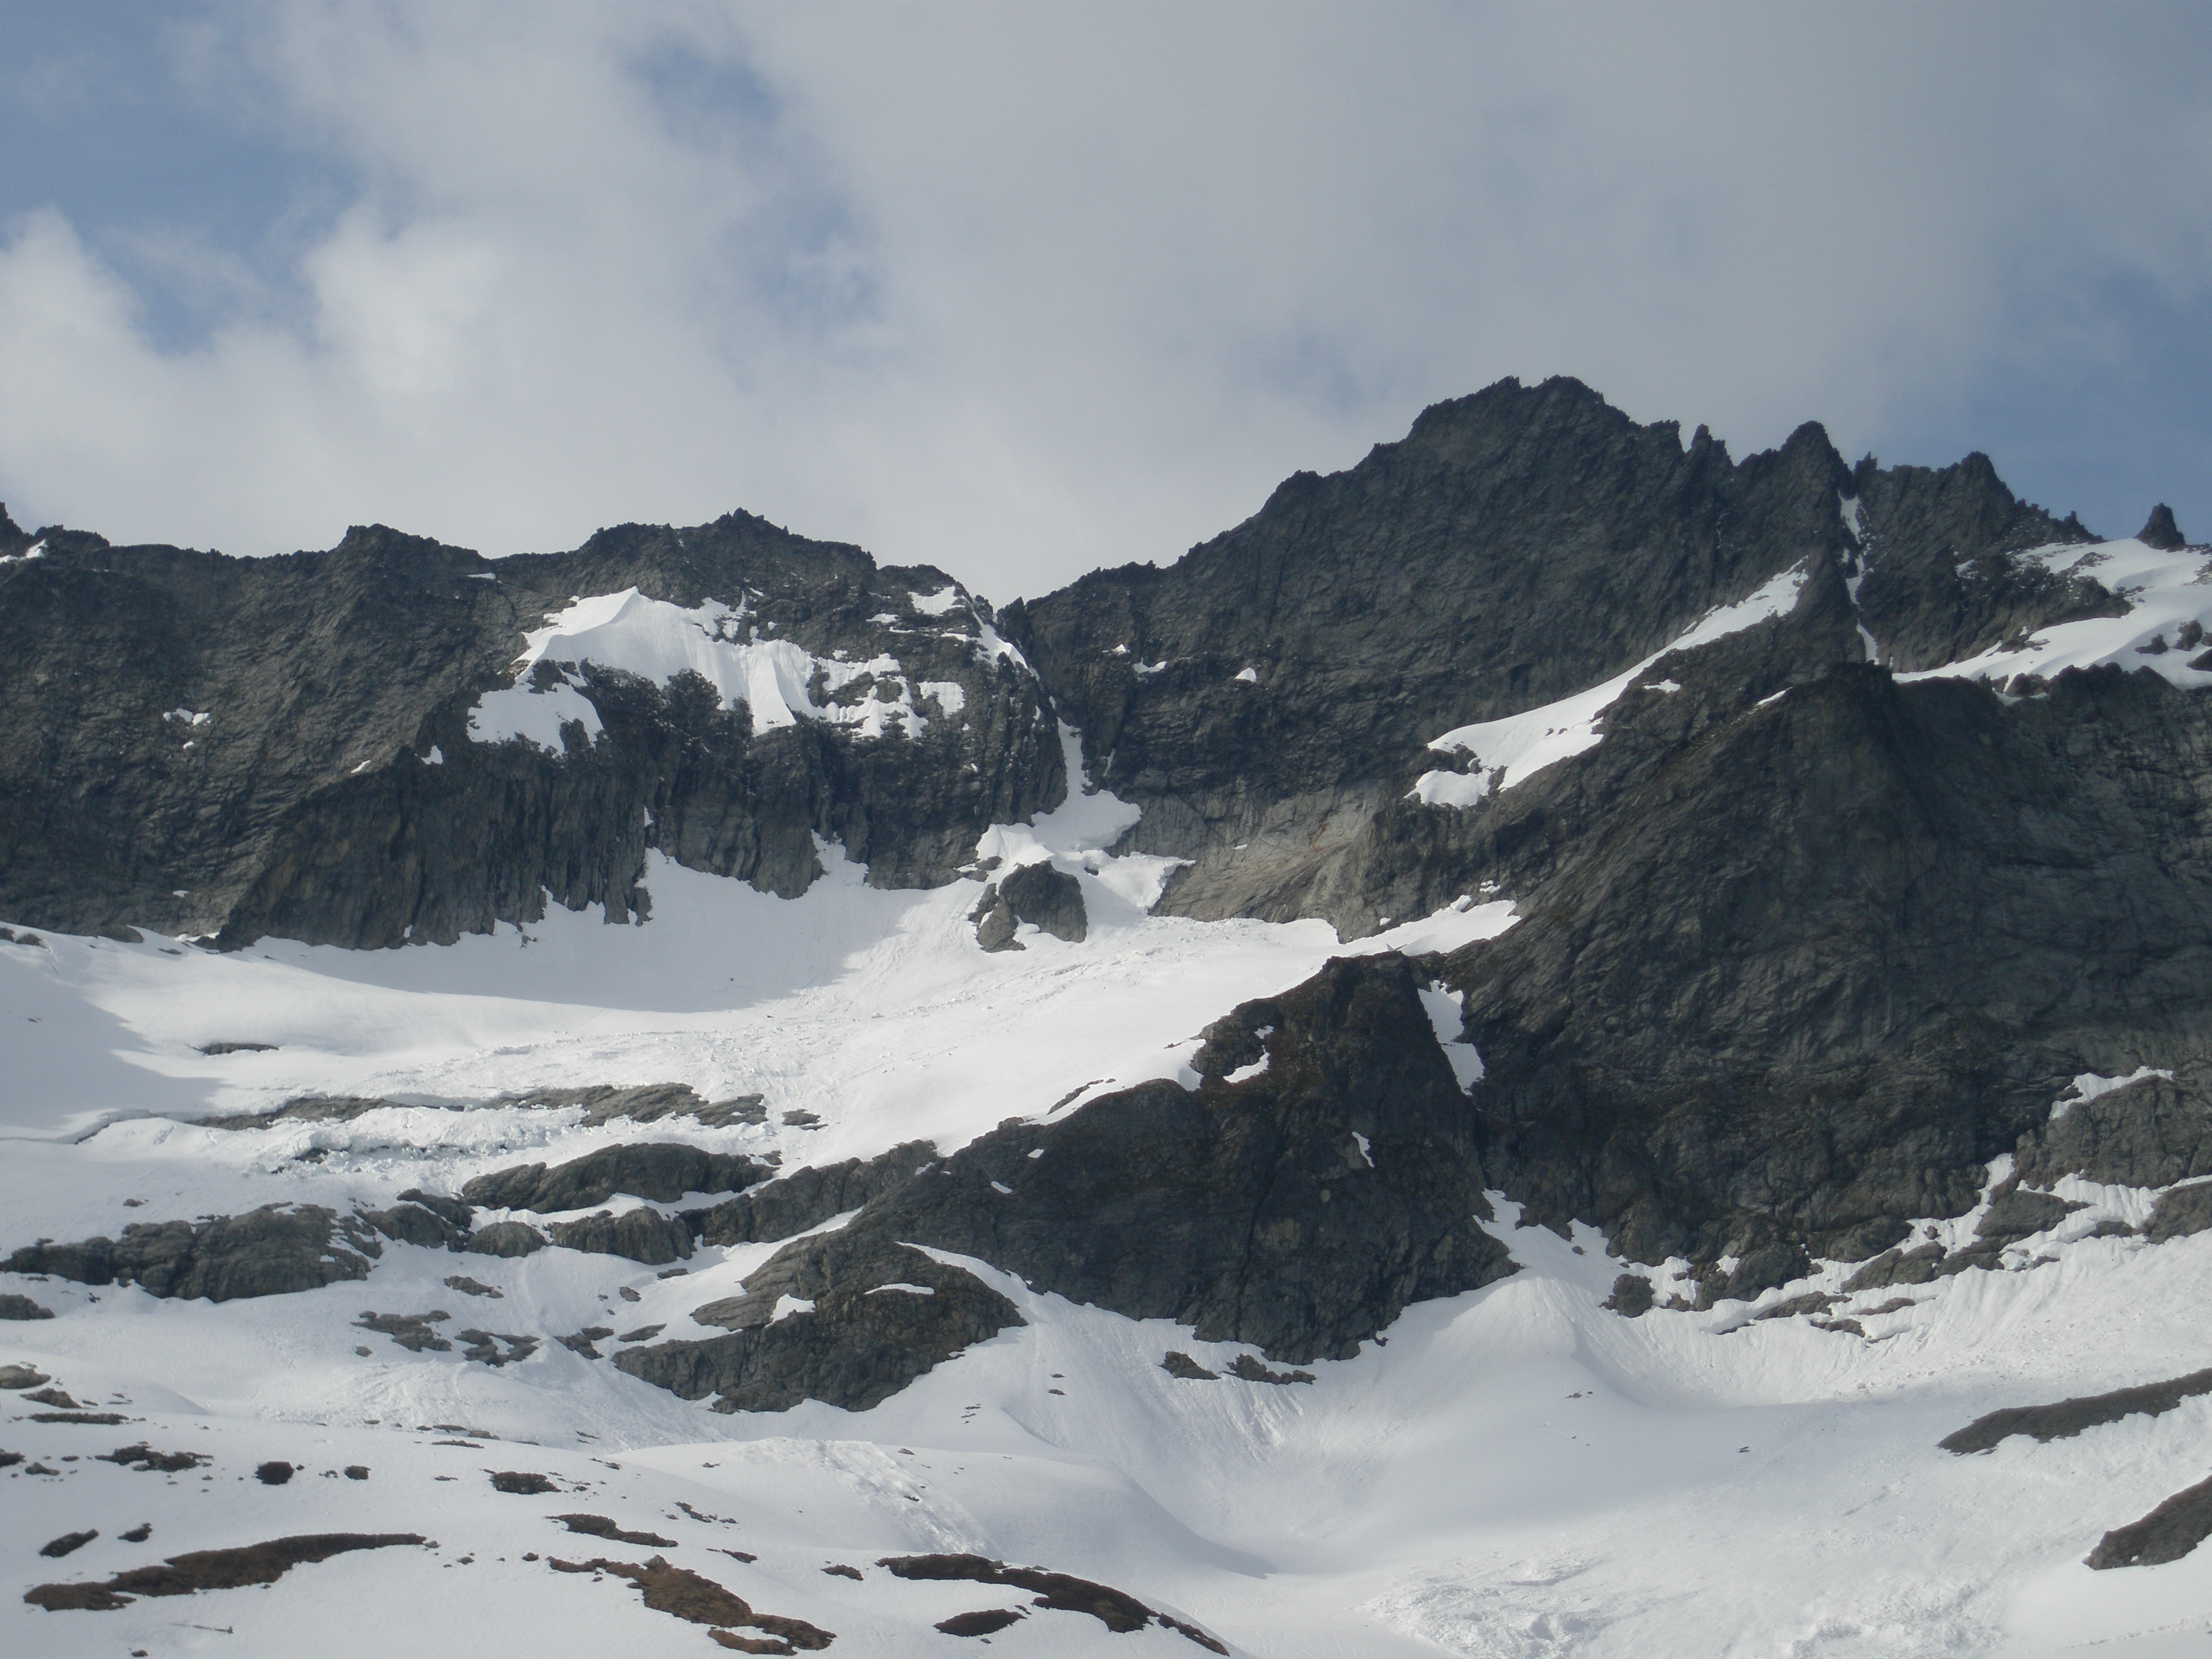 Photo of Forbidden Peak from the south, showing the West Ridge Coulior